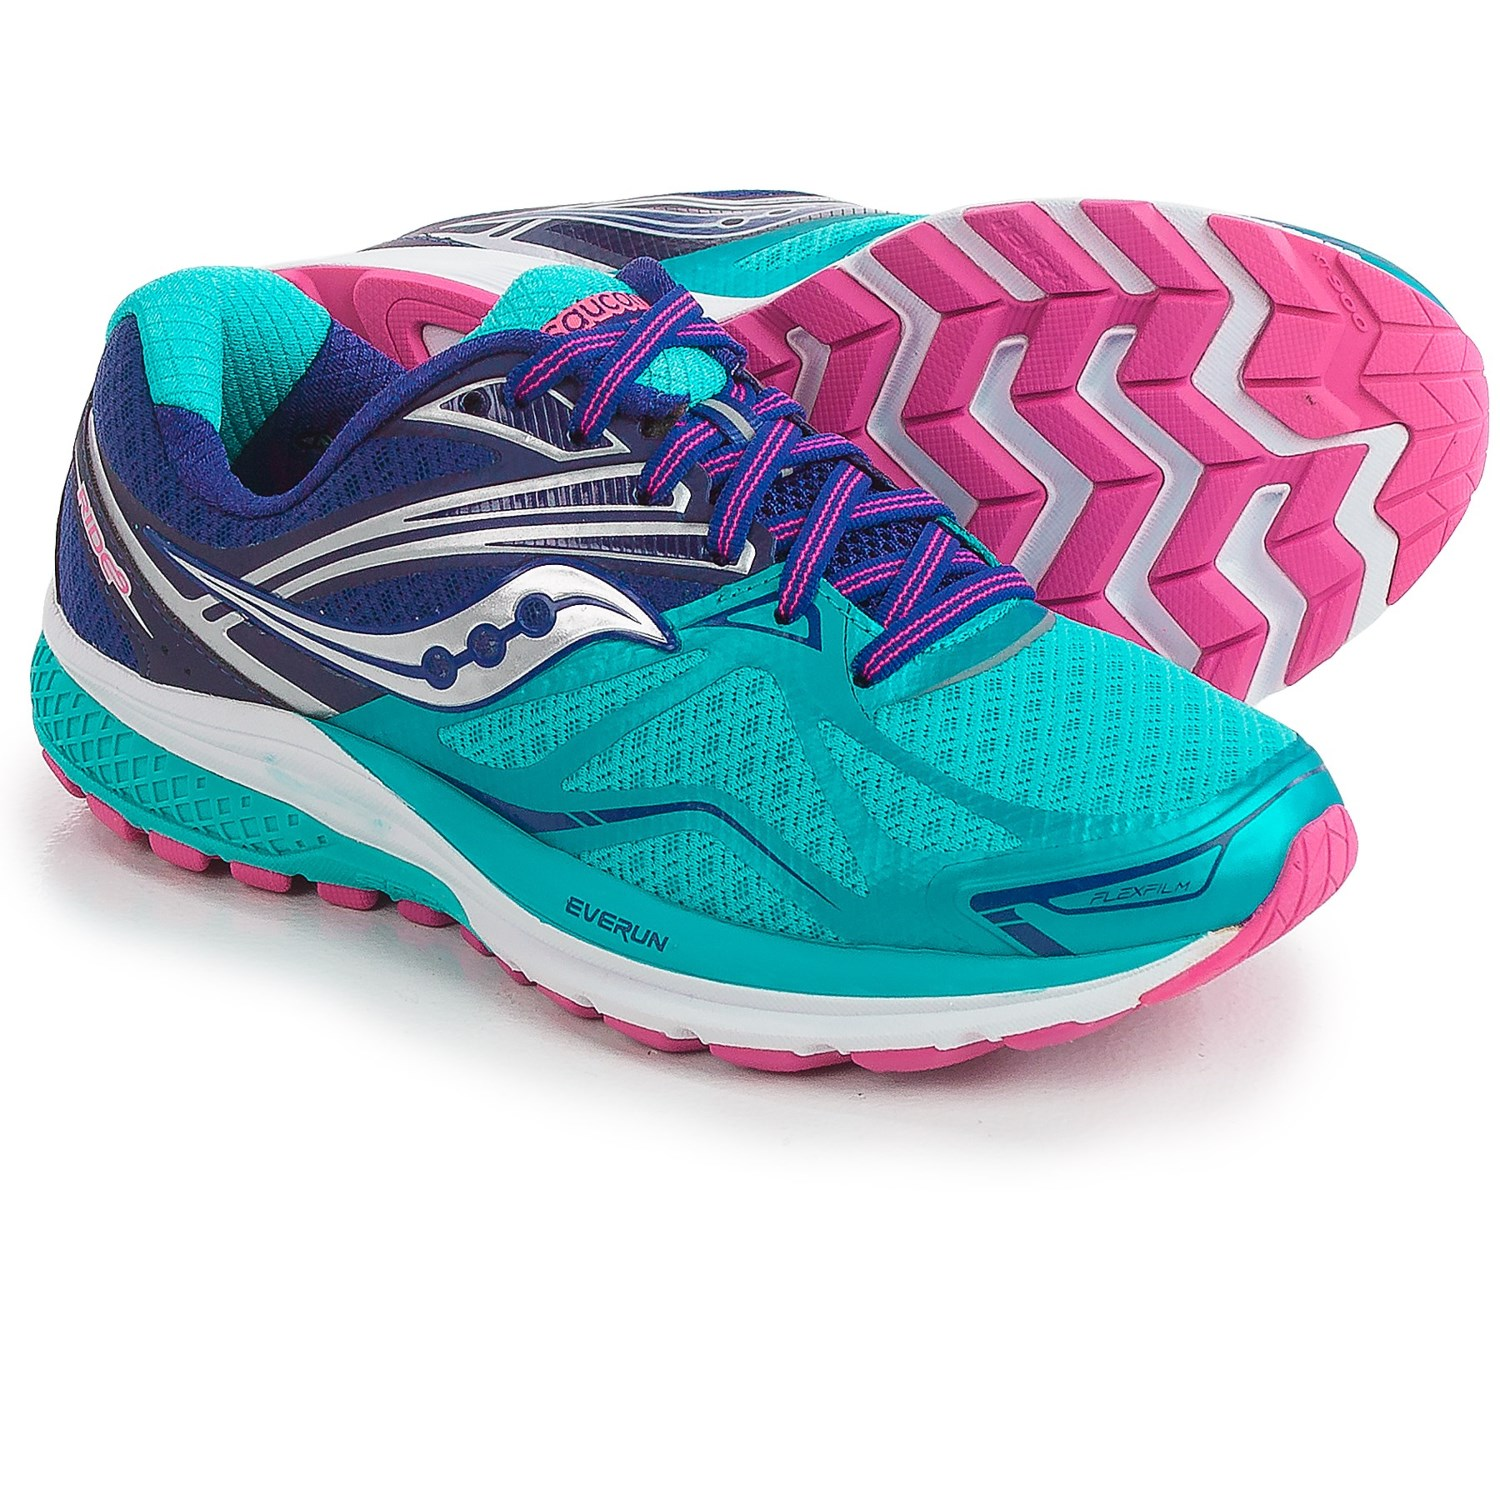 Best Saucony Marathon Shoes